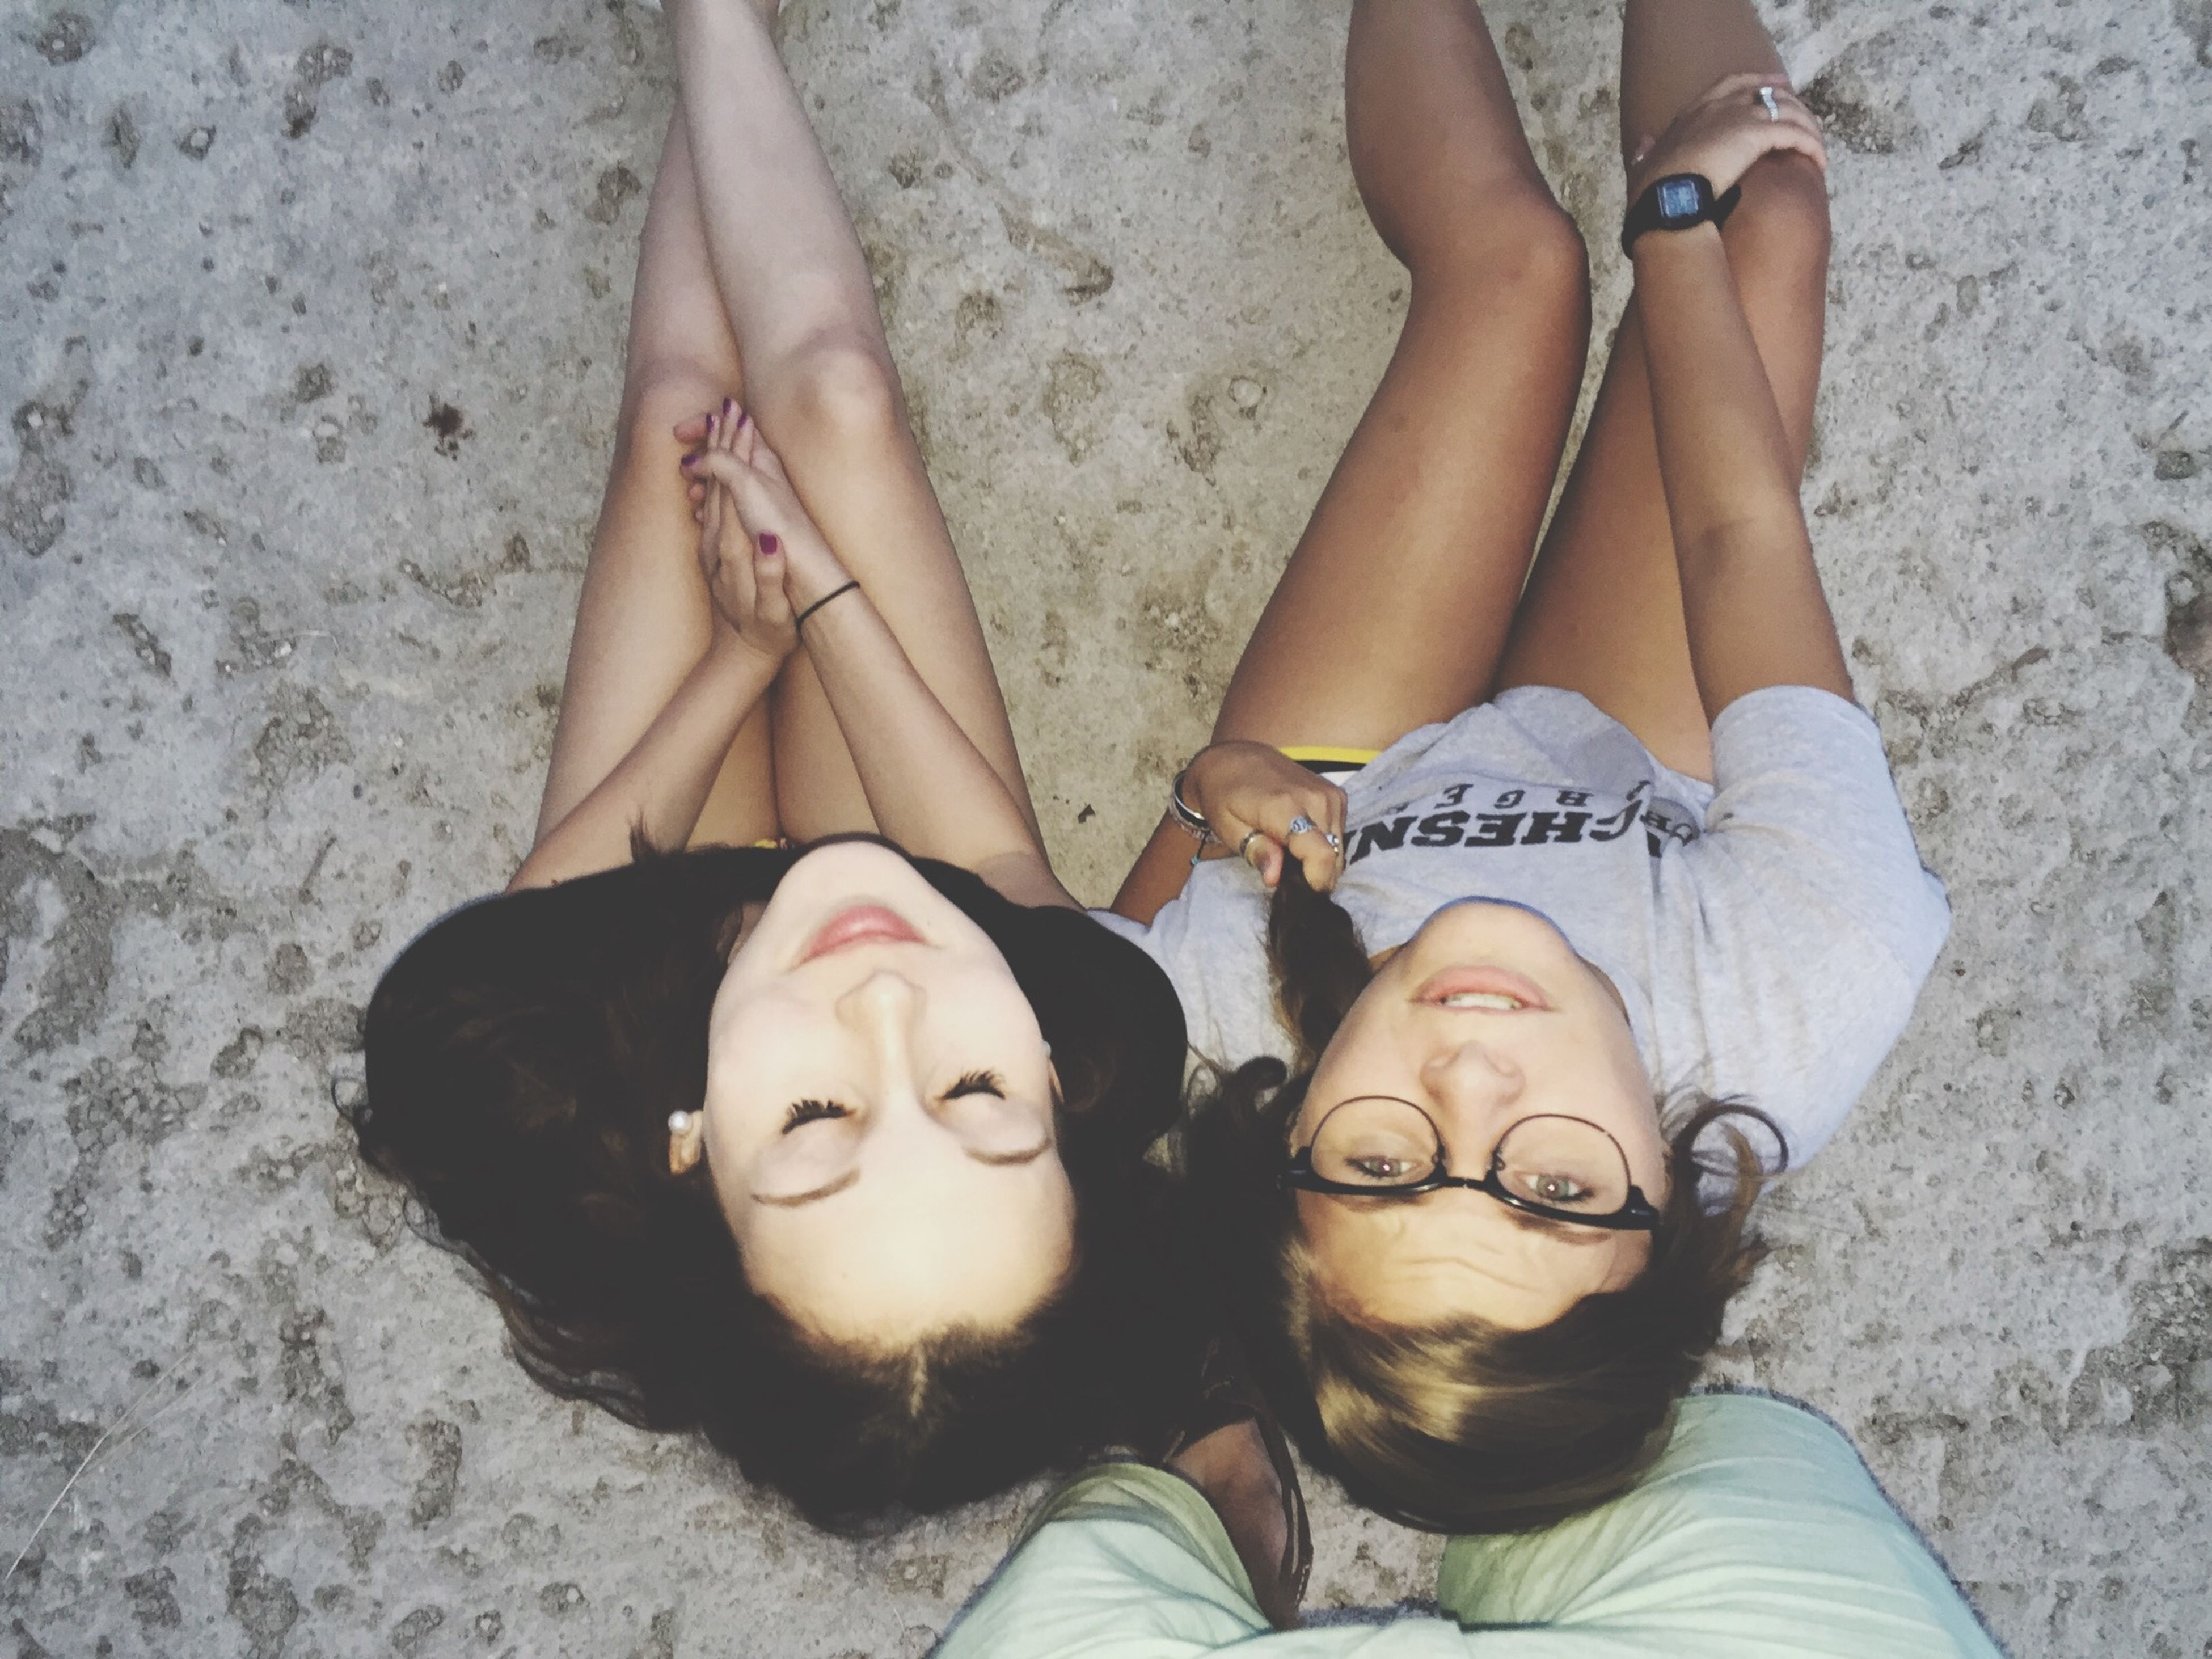 lifestyles, leisure activity, young adult, young women, togetherness, person, bonding, casual clothing, sitting, beach, portrait, relaxation, love, looking at camera, standing, friendship